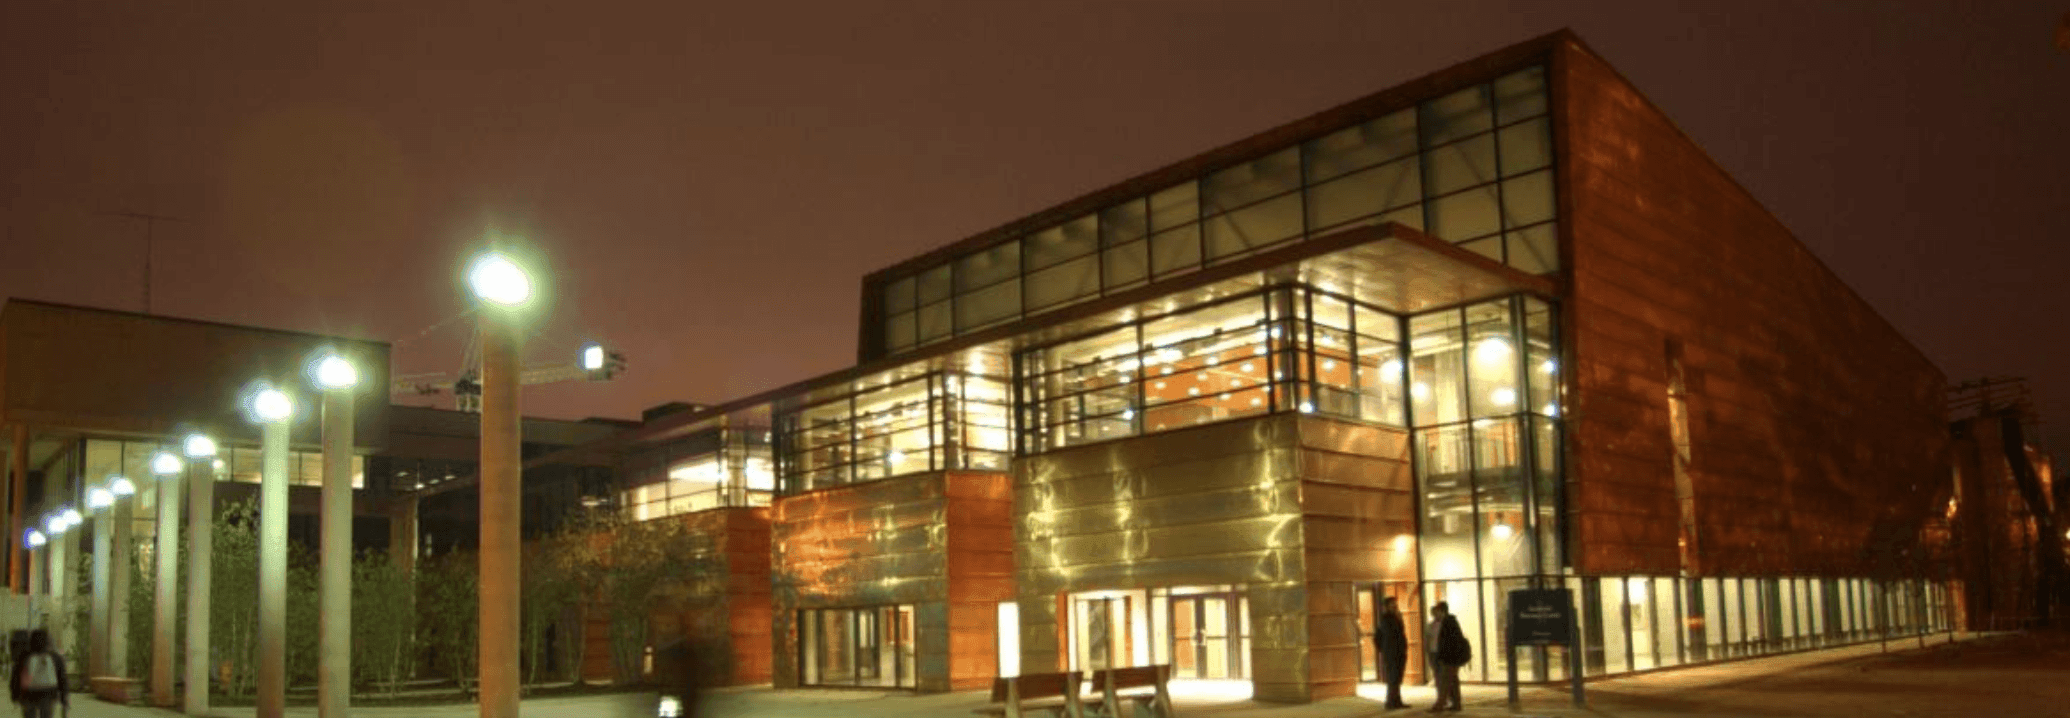 University of Toronto Scarborough library lit up at night